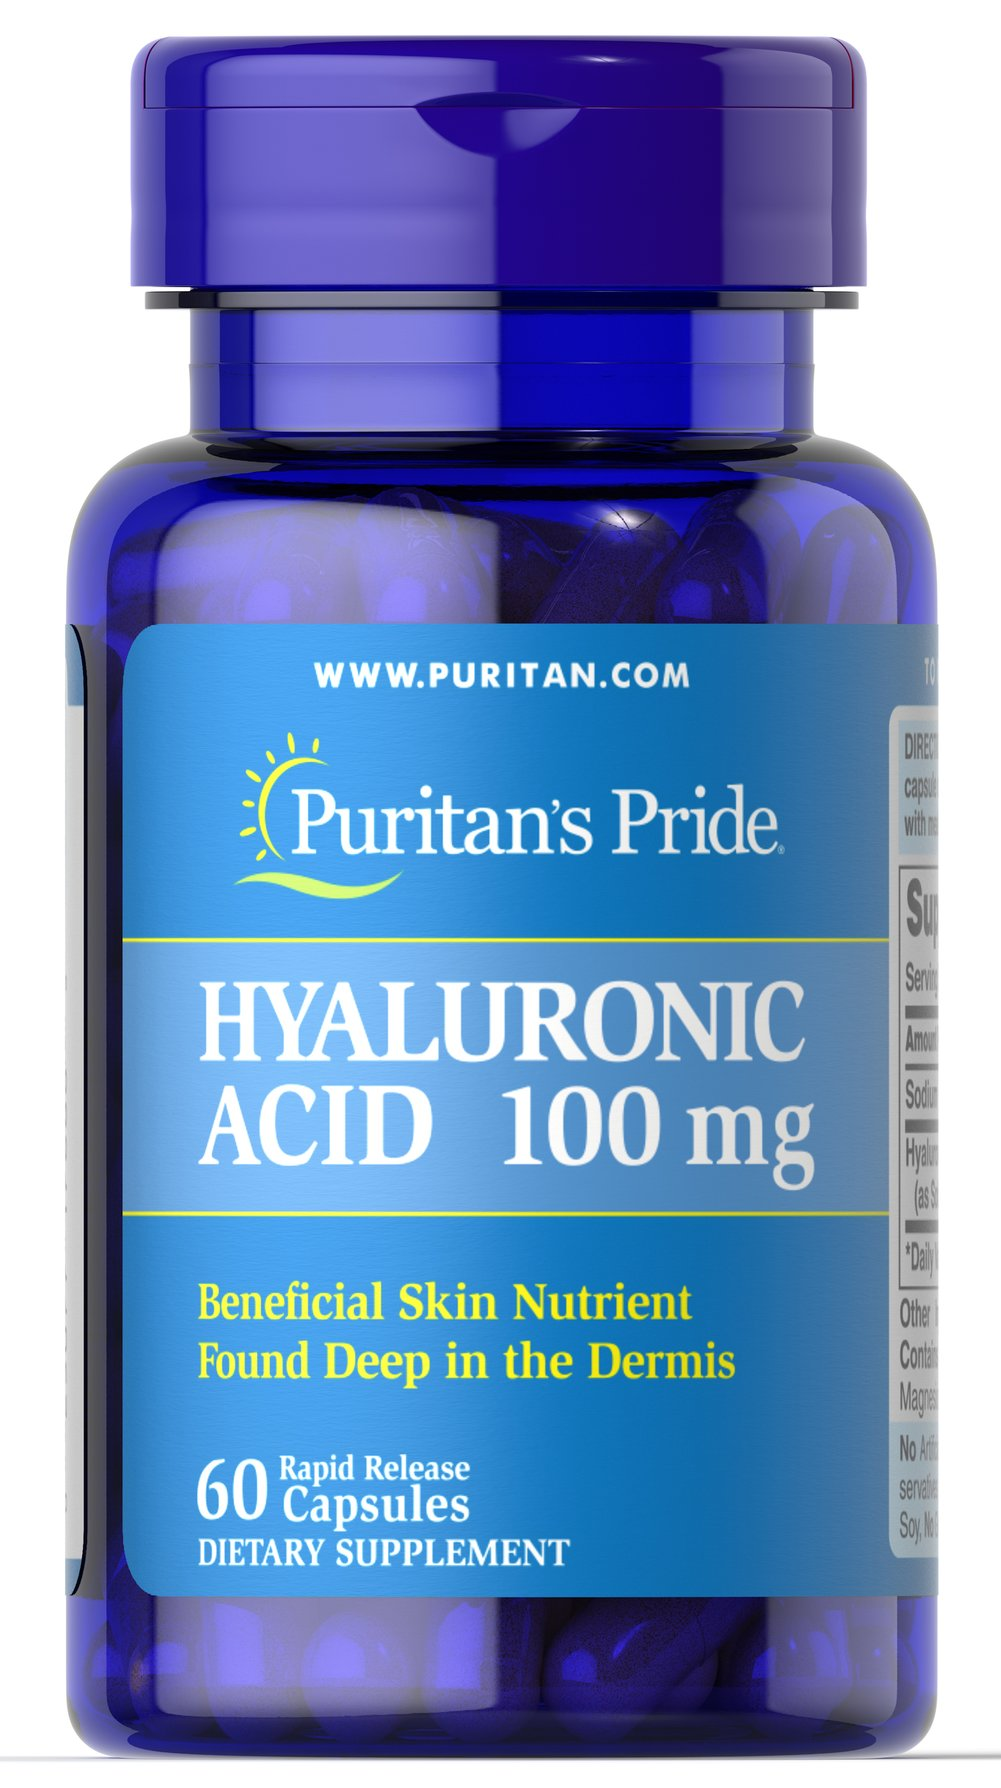 Hyaluronic Acid 100 mg <p>Helps lubricate joints**</p><p>Hyaluronic Acid is a polysaccharide found in almost all adult connective tissue, including joints, ligaments, tendons and skin.** Just one Hyaluronic Acid capsule a day can help maintain the fluid between your joints, providing the cushioning and lubrication necessary for easy movement.**</p> 60 Capsules 100 mg